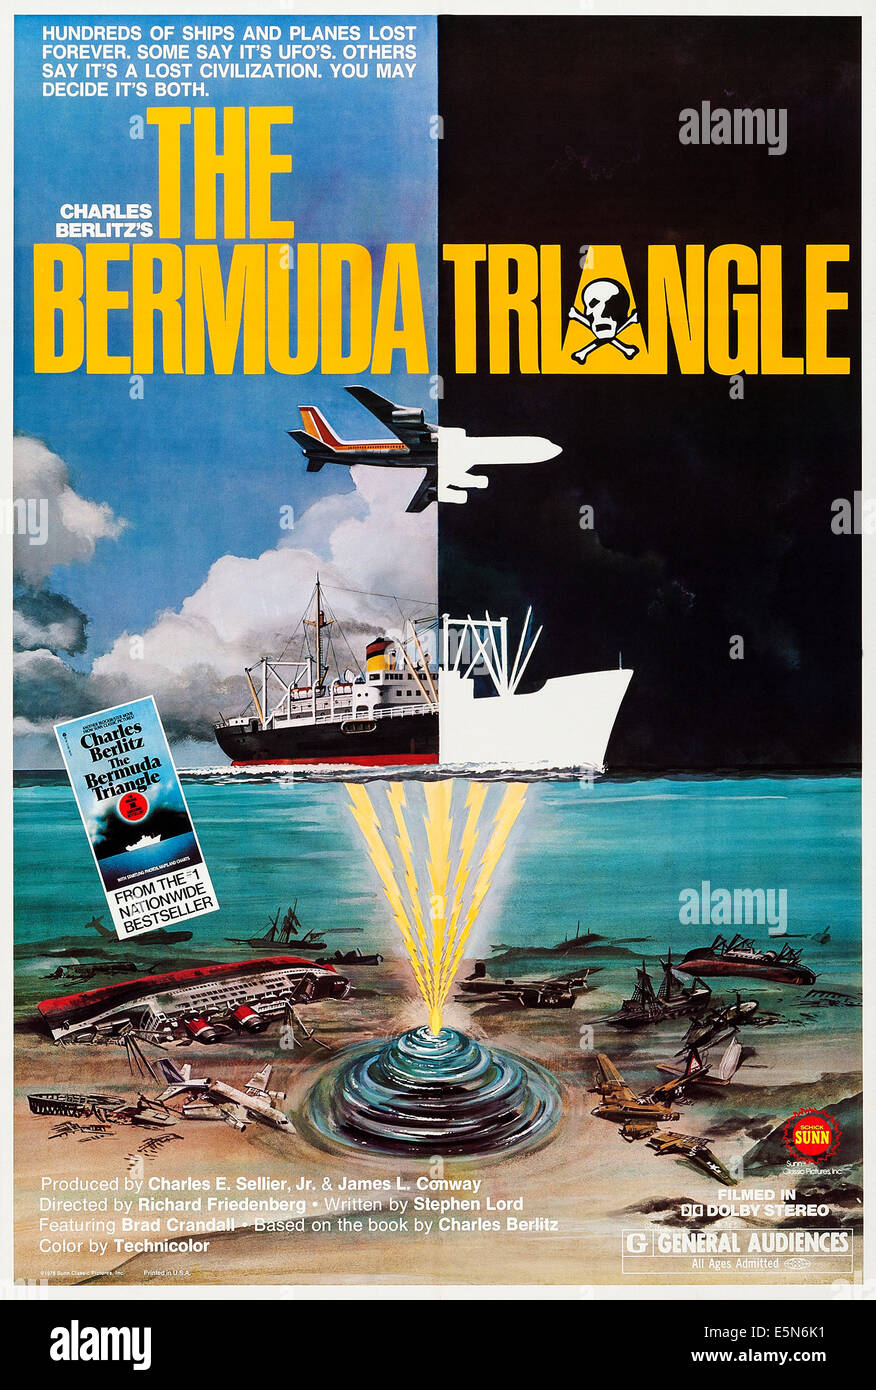 THE BERMUDA TRIANGLE, US poster, 1979, (c) Sunn Classic Pictures/ Courtesy: Everett Collection. - Stock Image